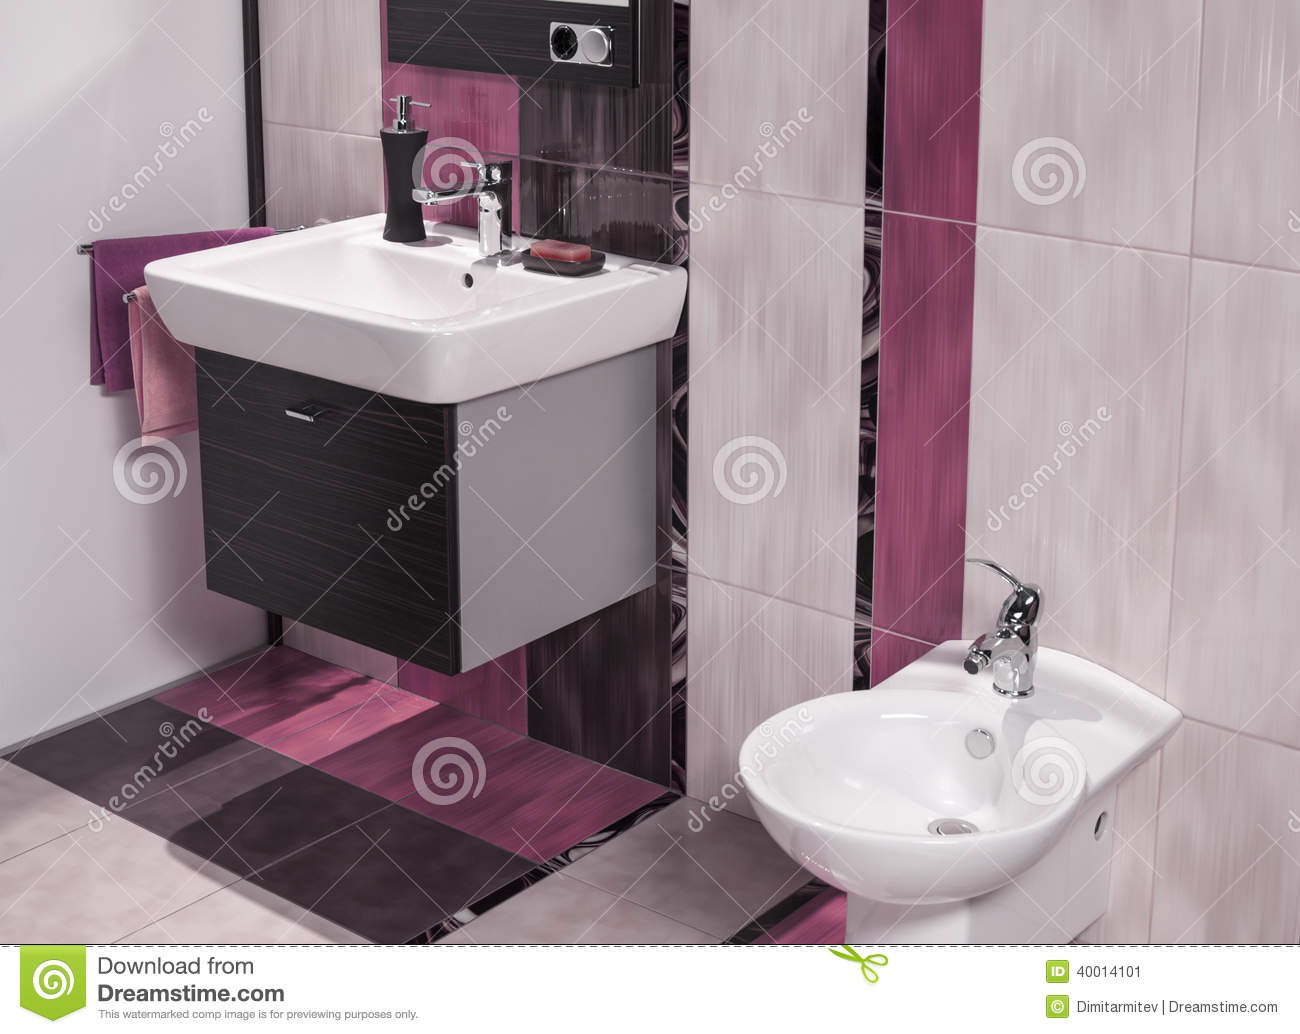 Detail of modern bathroom with sink and bidet stock photo for Detail in contemporary bathroom design